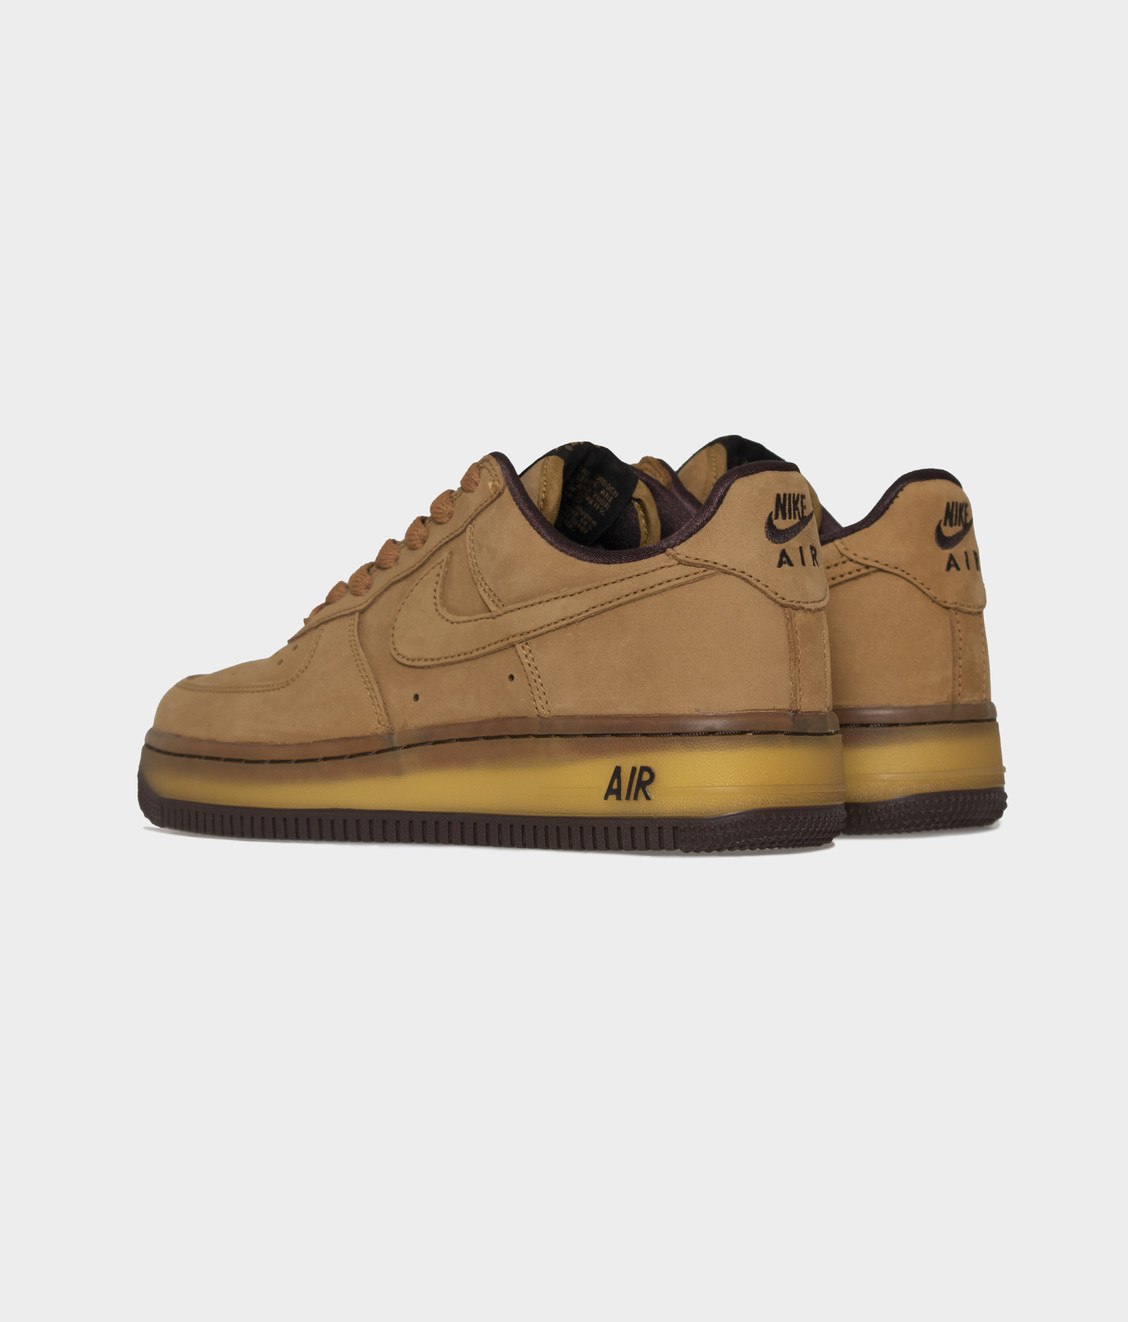 Nike Nike Air Force 1 Low Retro SP Wheat/Mocha